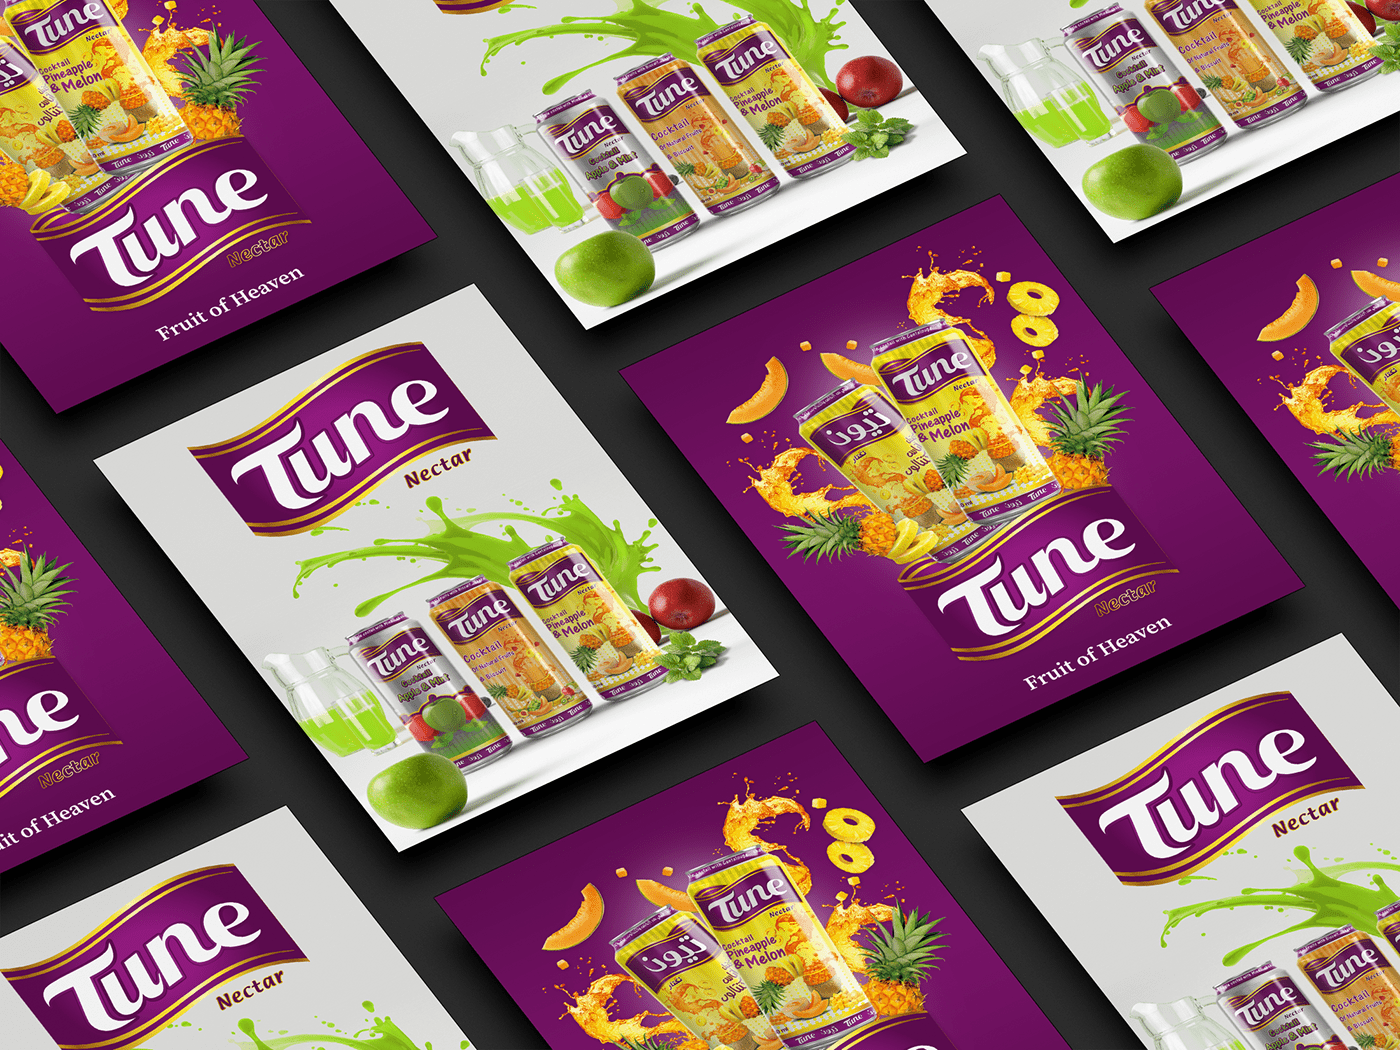 TUNE Juice - Brand Development & Packaging Design